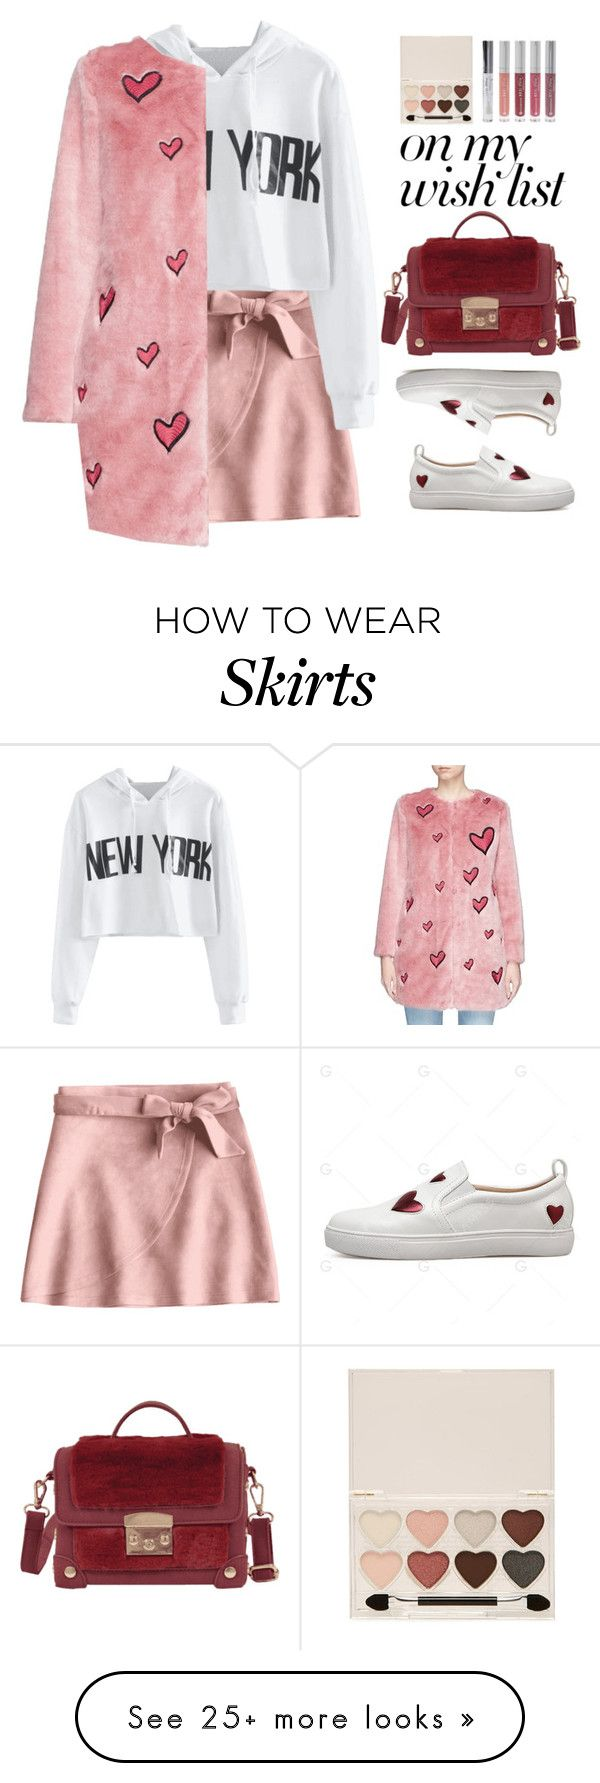 """""""#PolyPresents: Wish List"""" by justkejti on Polyvore featuring Alice + Olivia and Forever 21"""